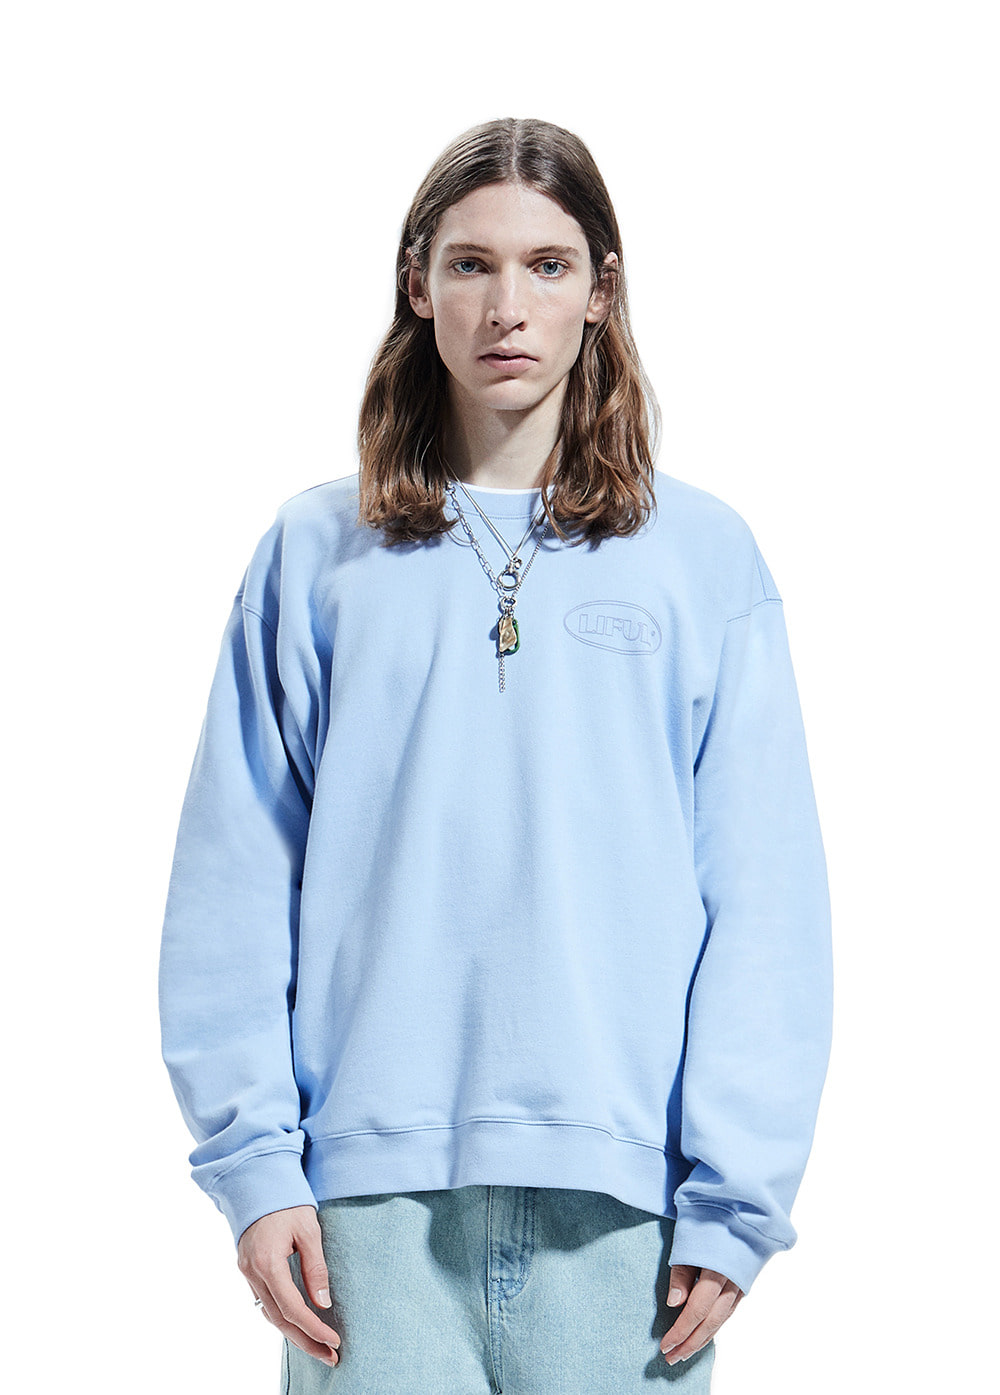 LINE OVAL LOGO SWEATSHIRT powder blue